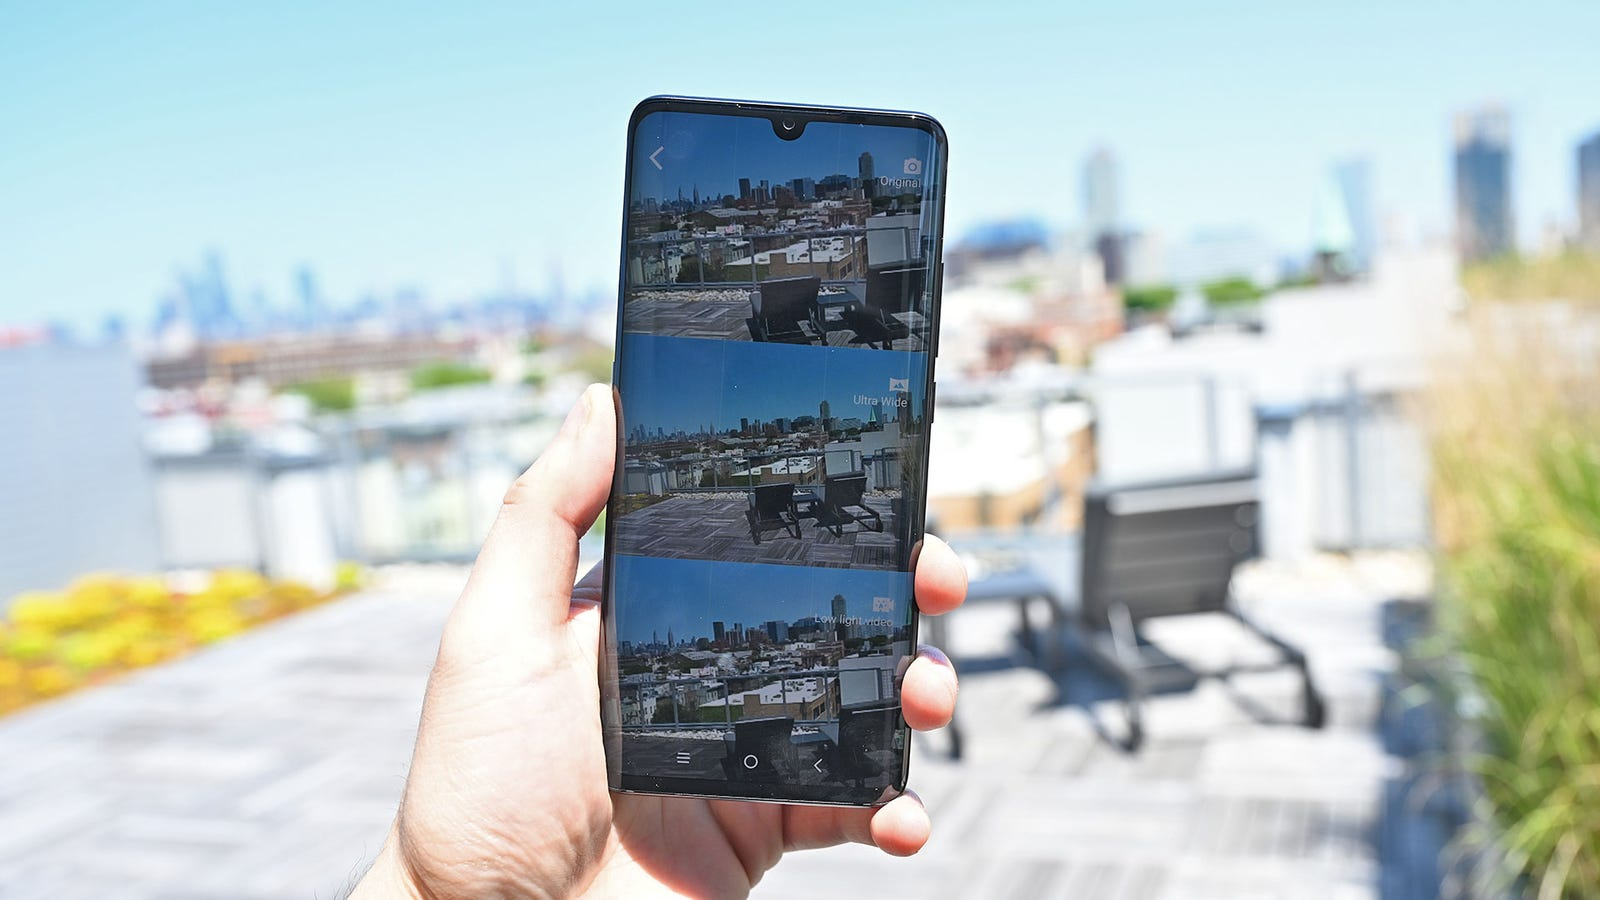 TCL even included a neat, but somewhat gimmicky triple shot camera view.